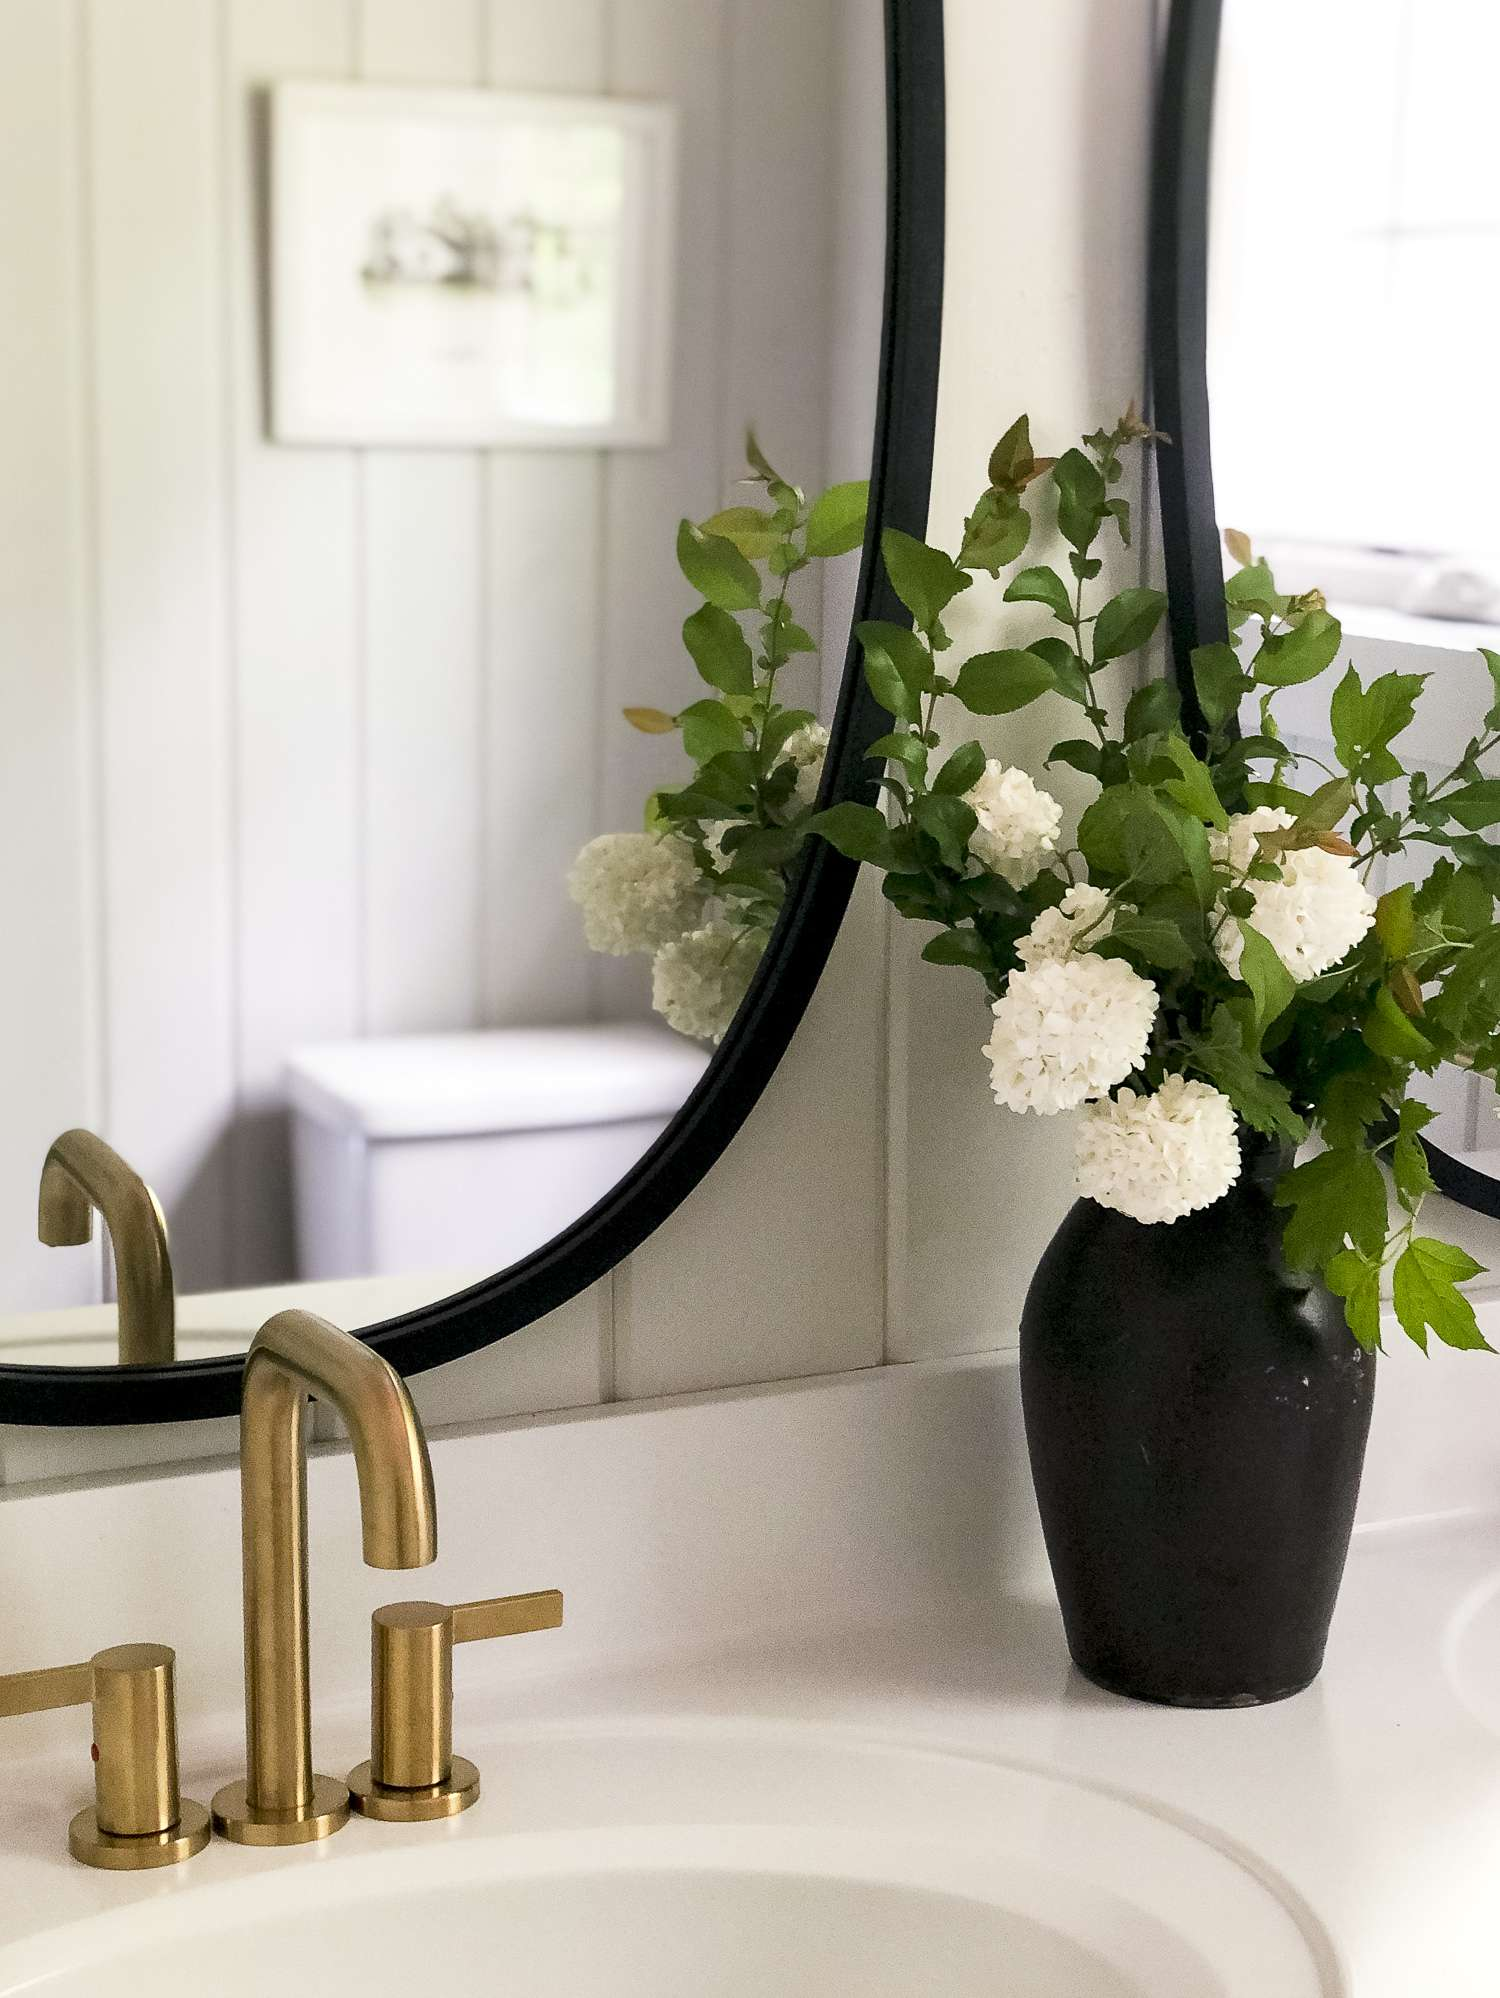 Affordable brass faucets.